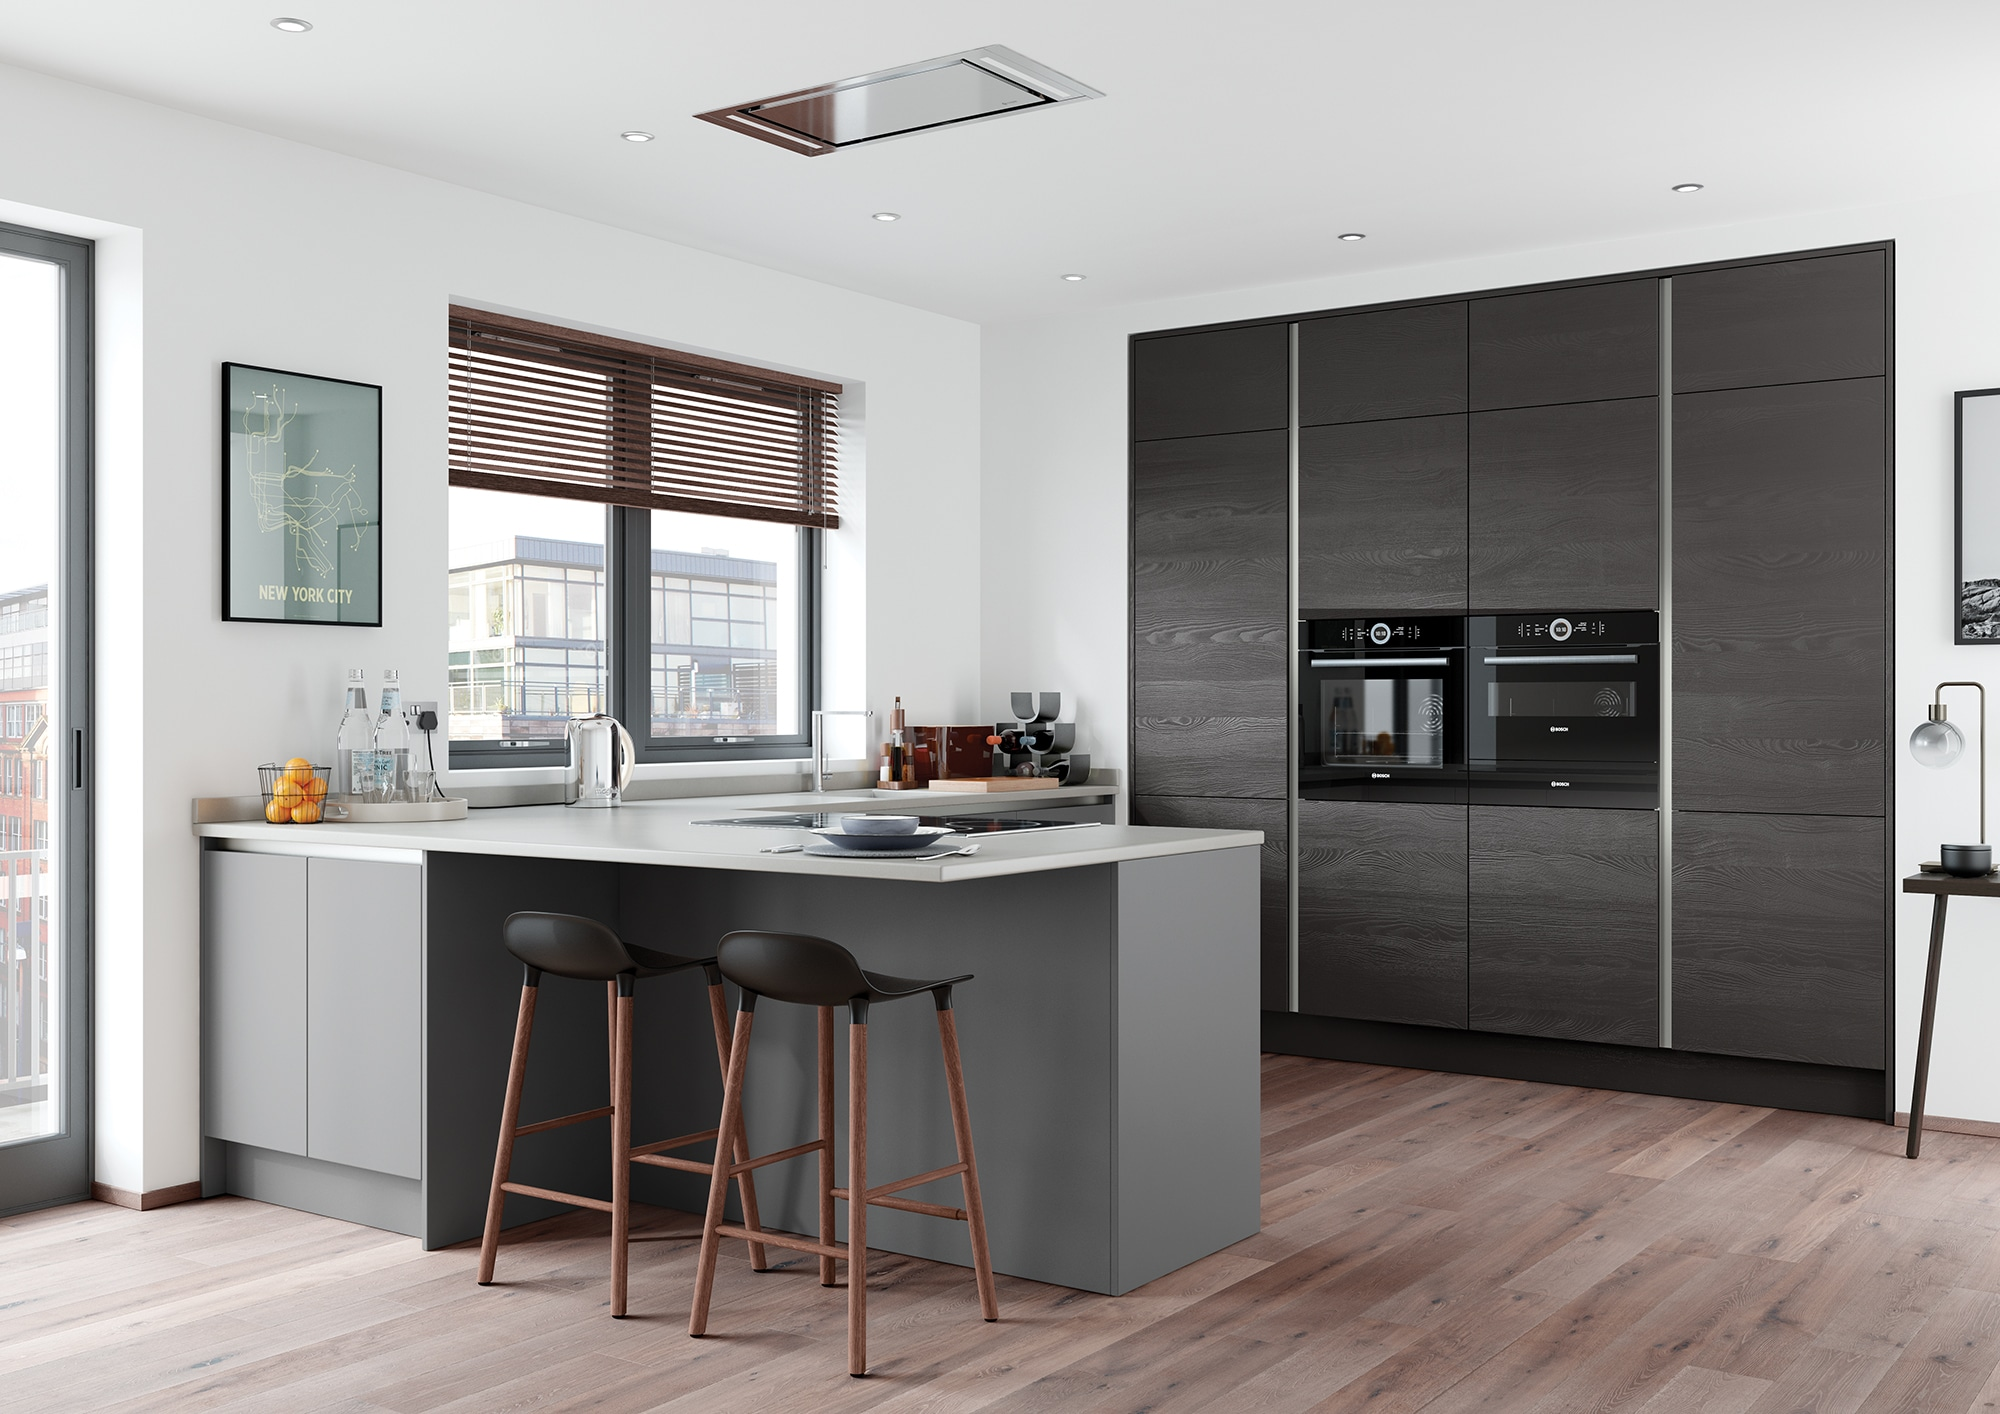 Kitchens And Kitchen Products Based In Stroud Gloucestershire - Matte grey kitchen